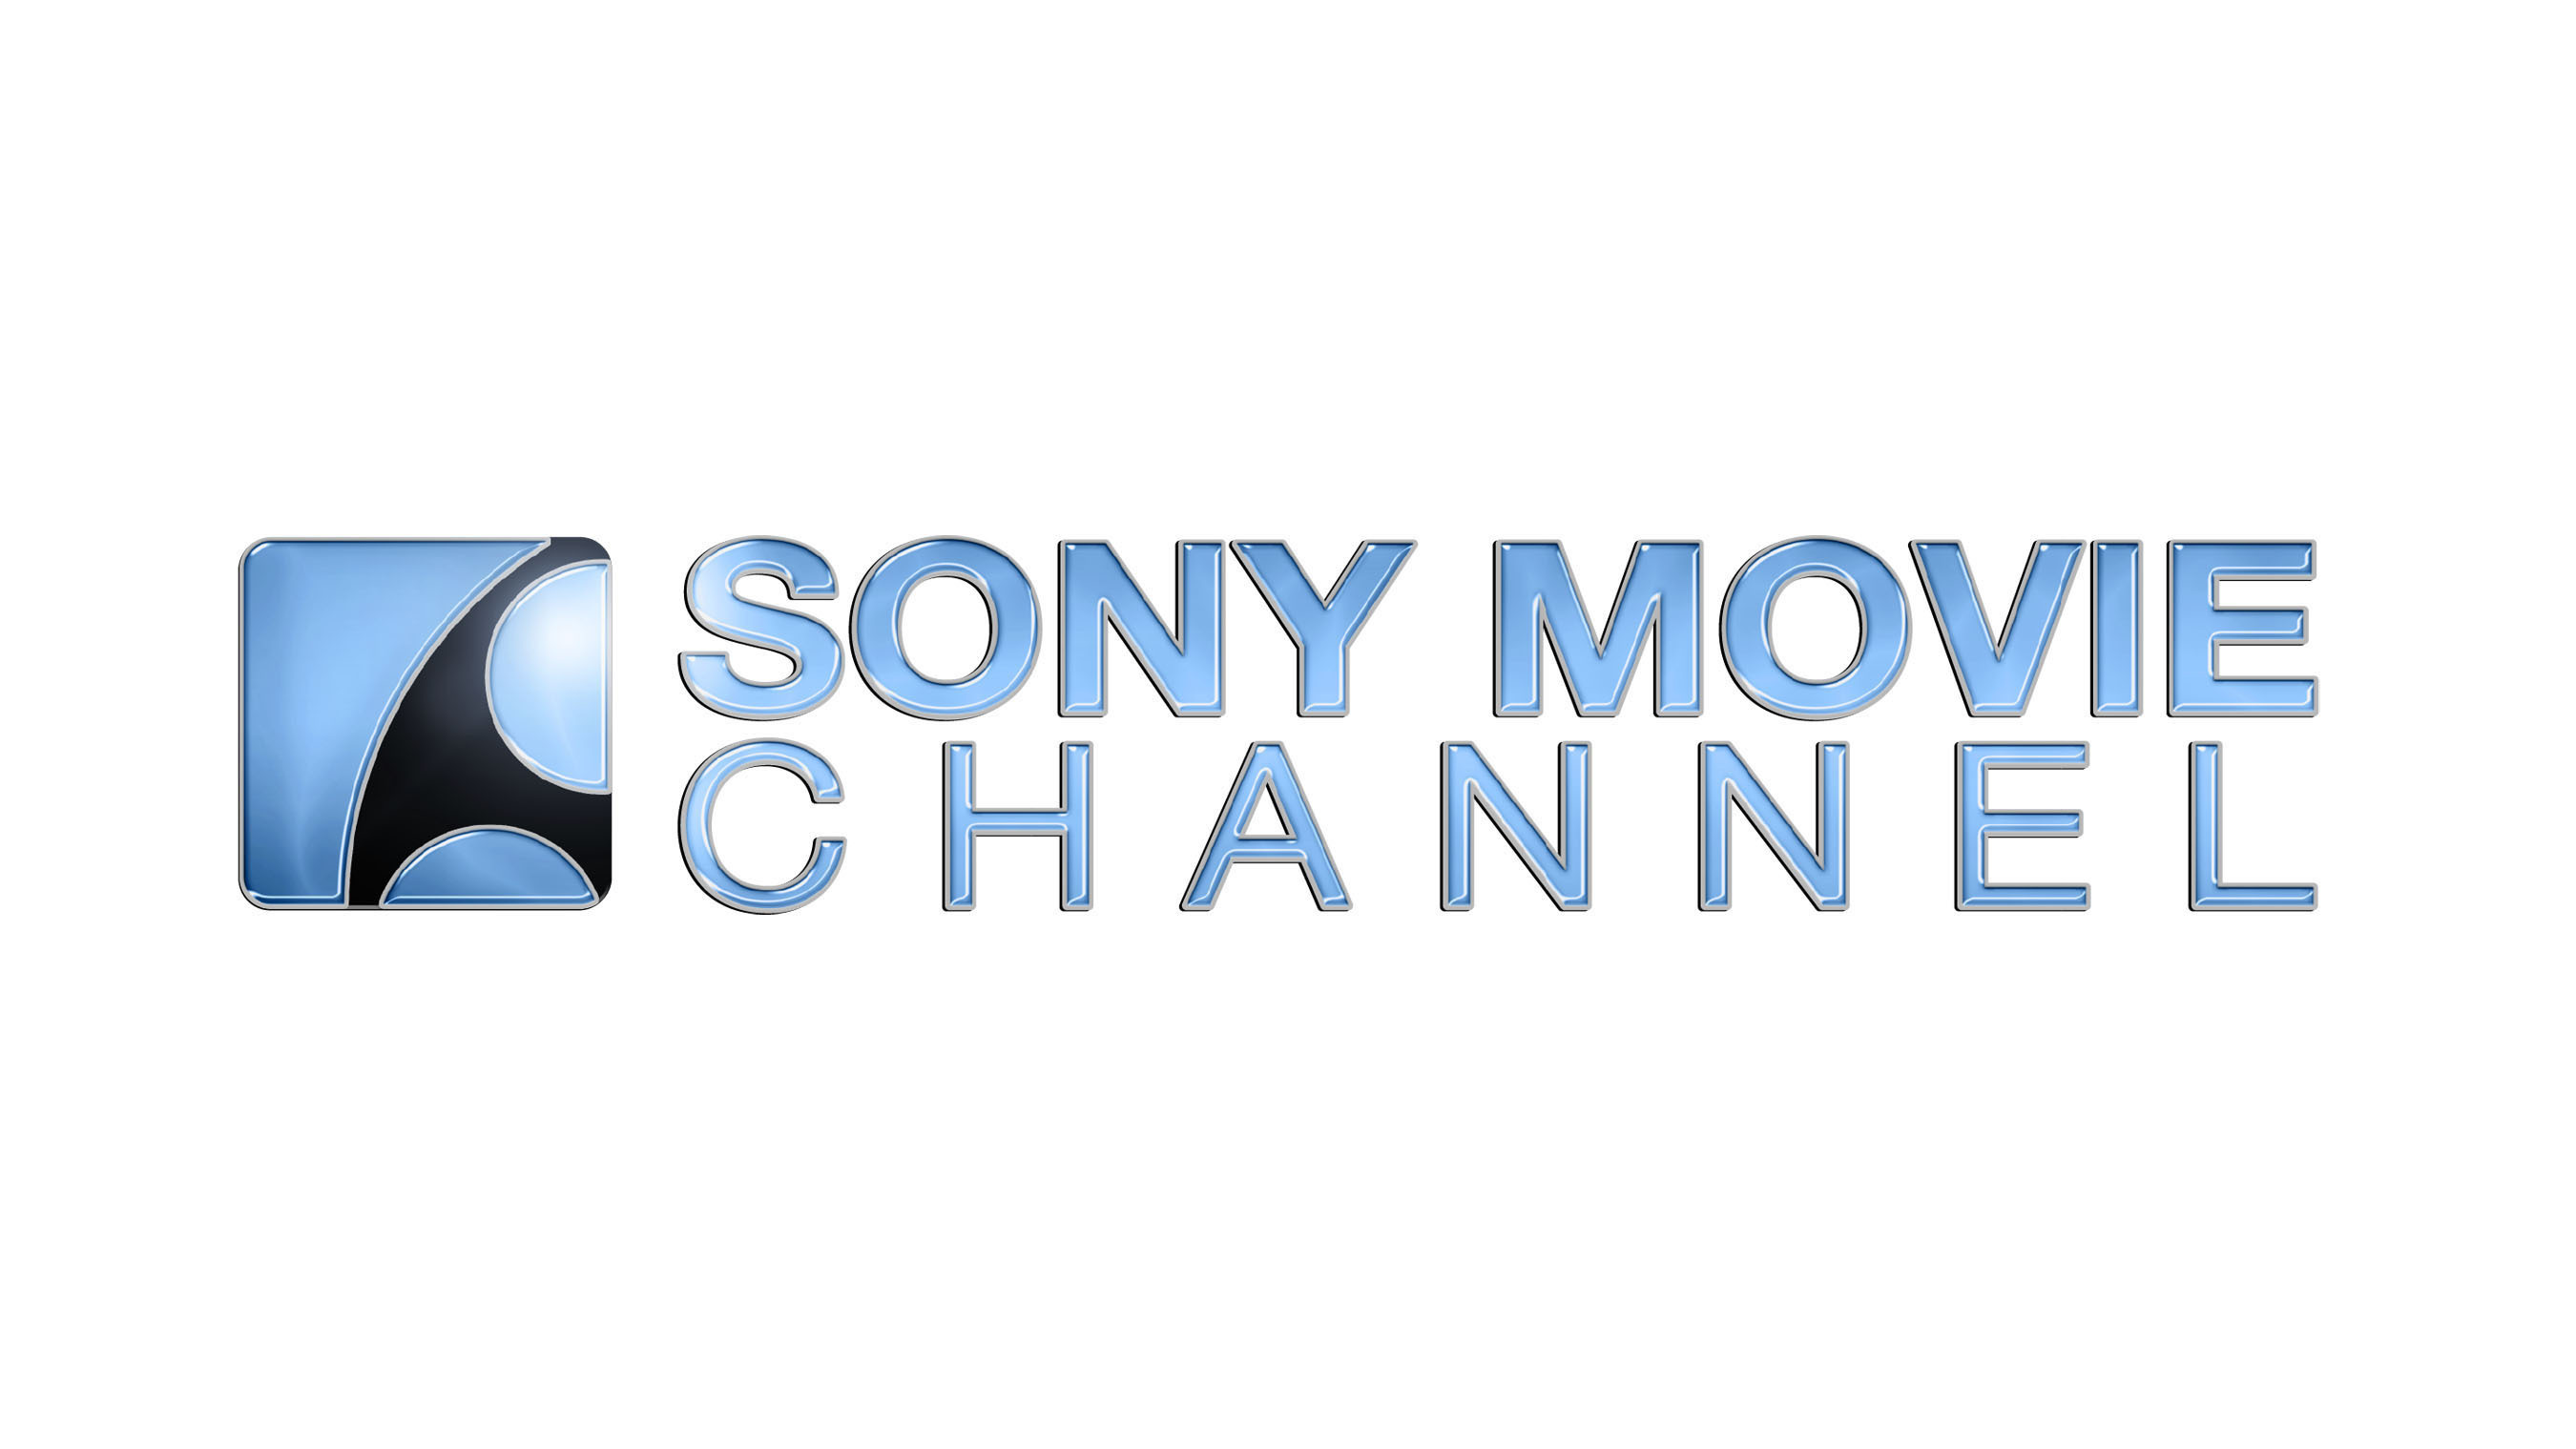 Sony Movie Channel to Present 'Music Movie Month' This July